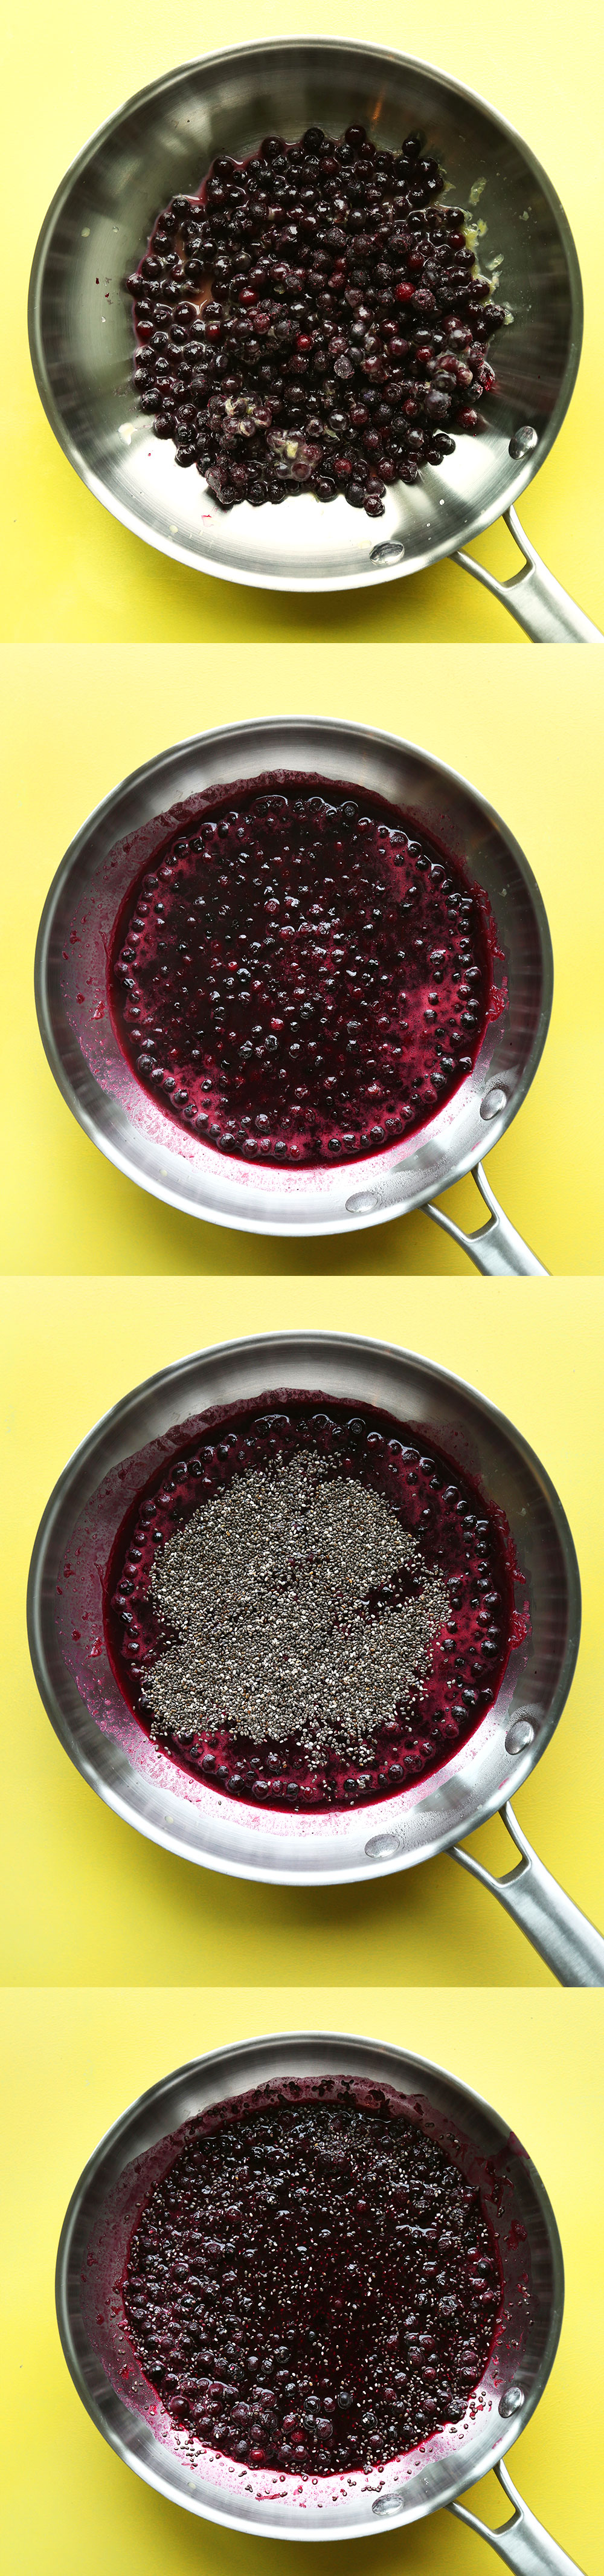 Cooking blueberries in a pan for healthy blueberry chia seed compote